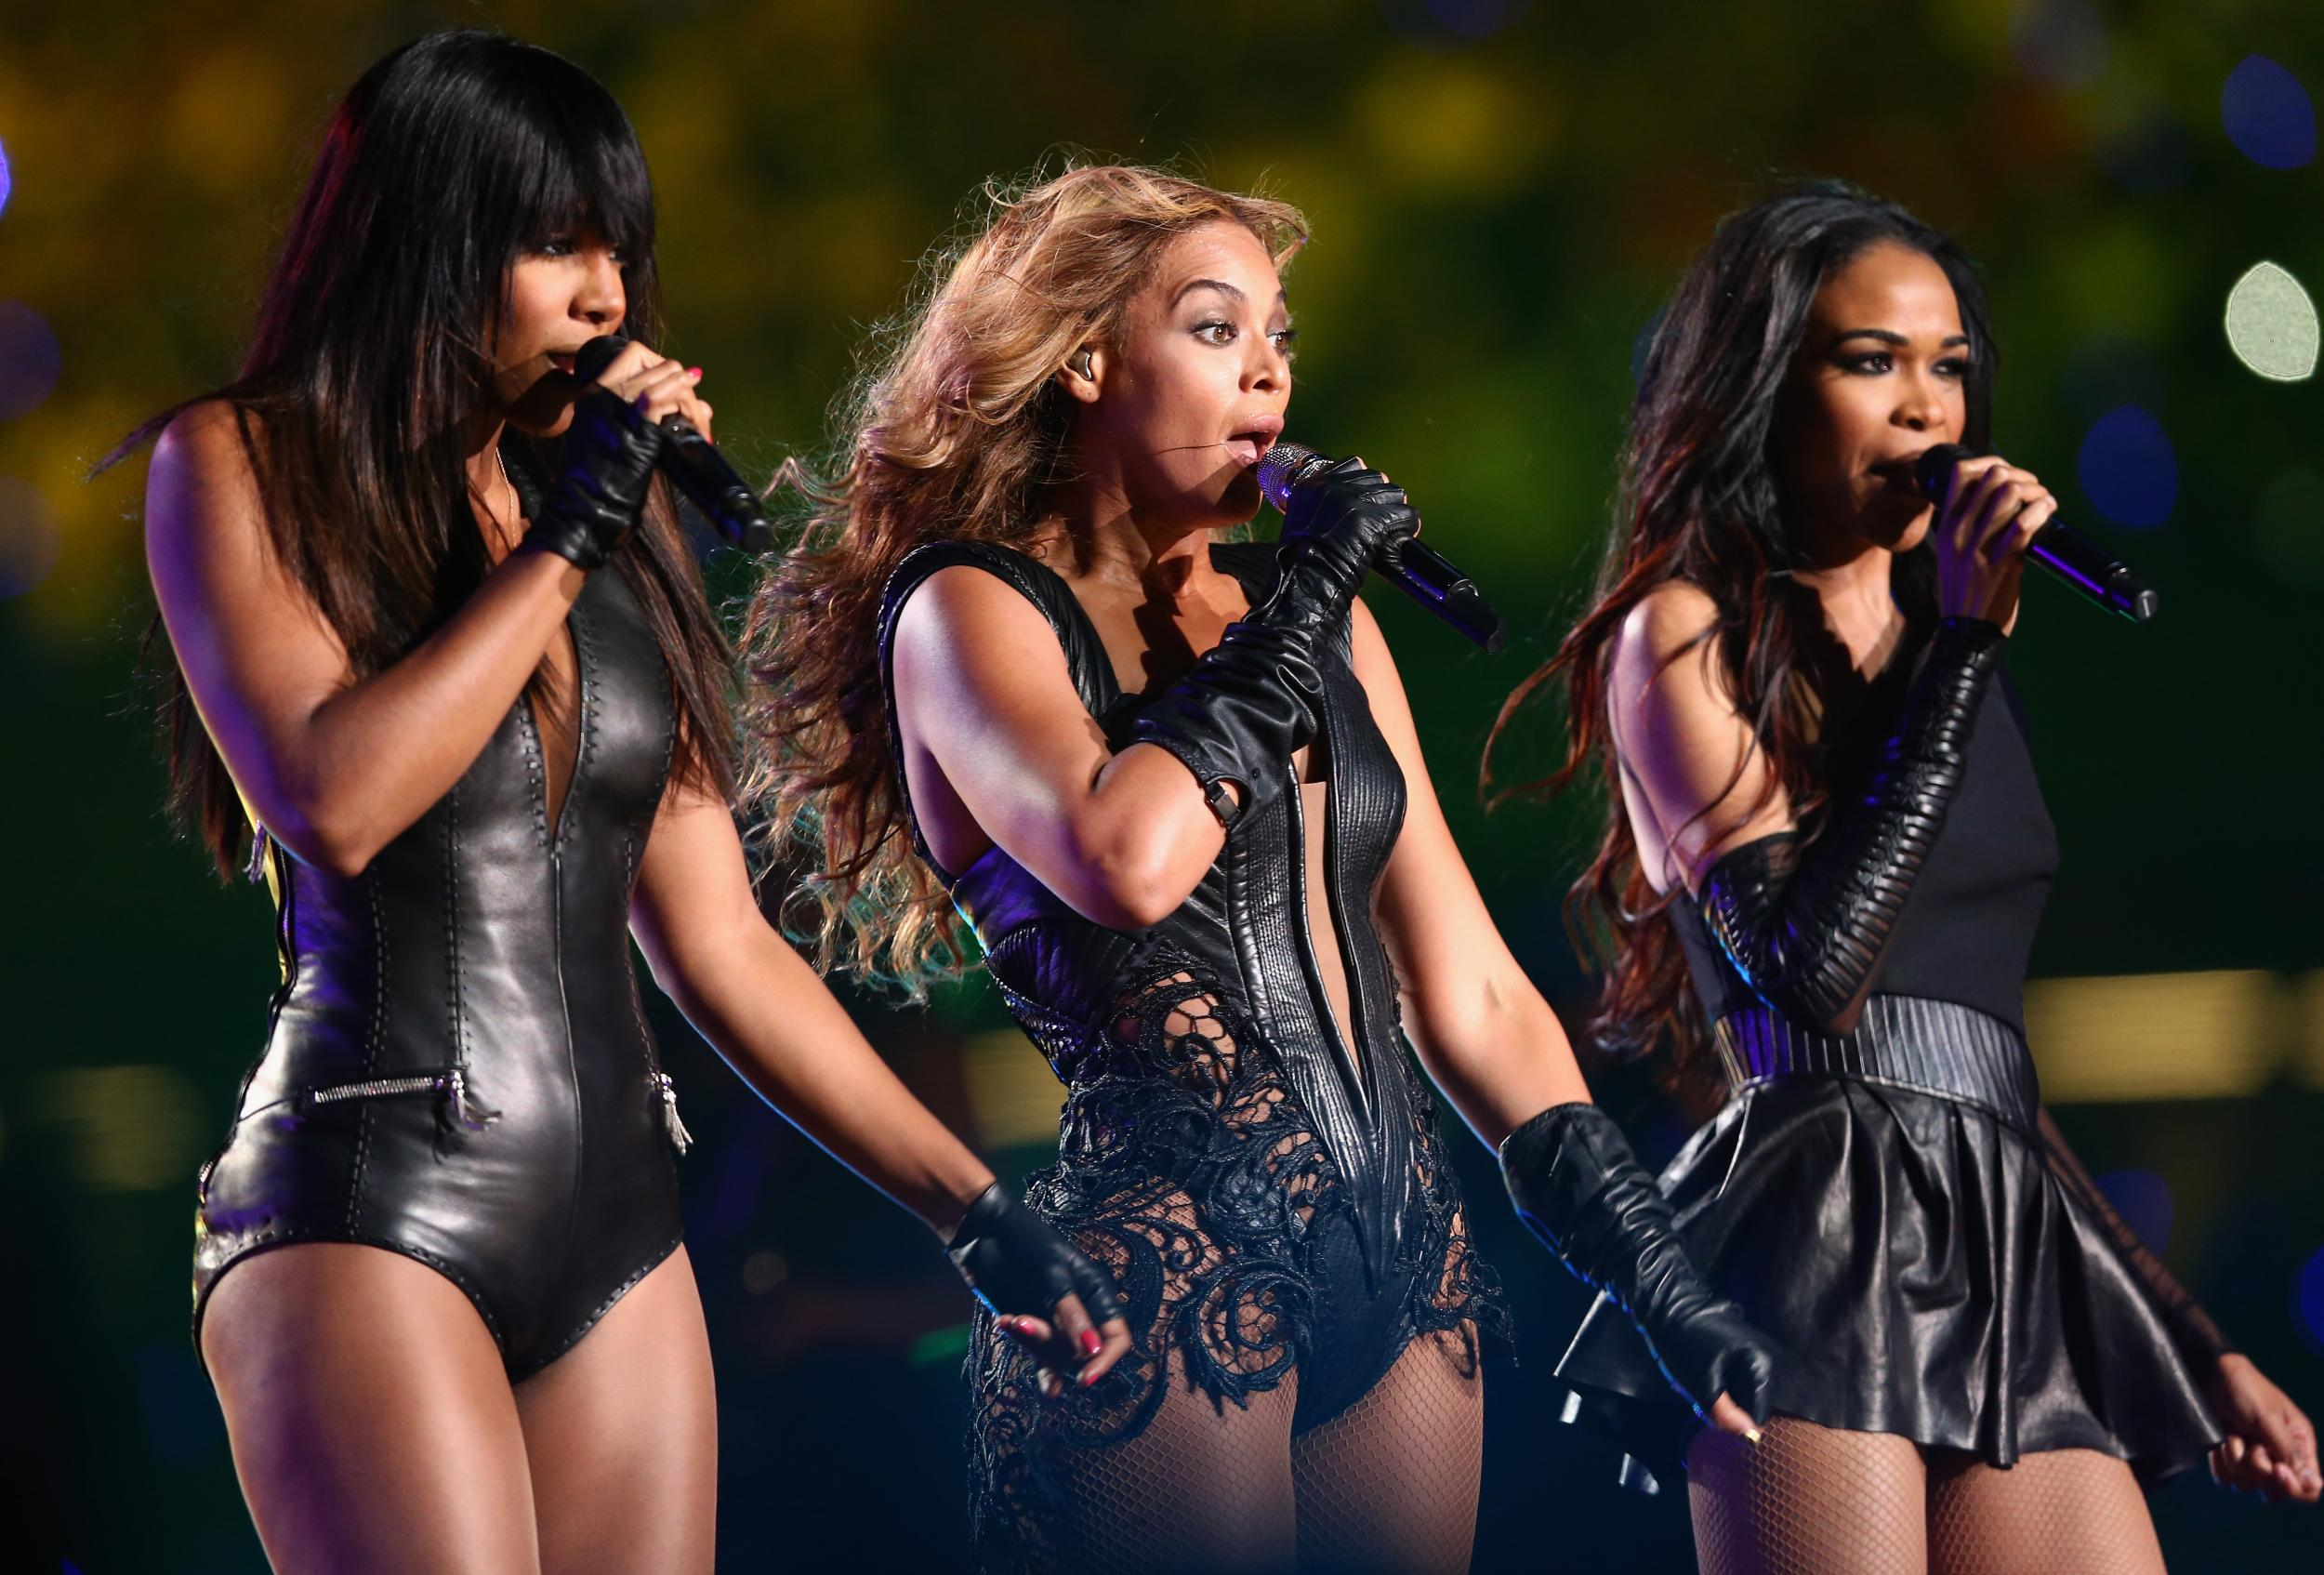 Destiny's Child to 'reunite for world tour', says Beyoncé's dad